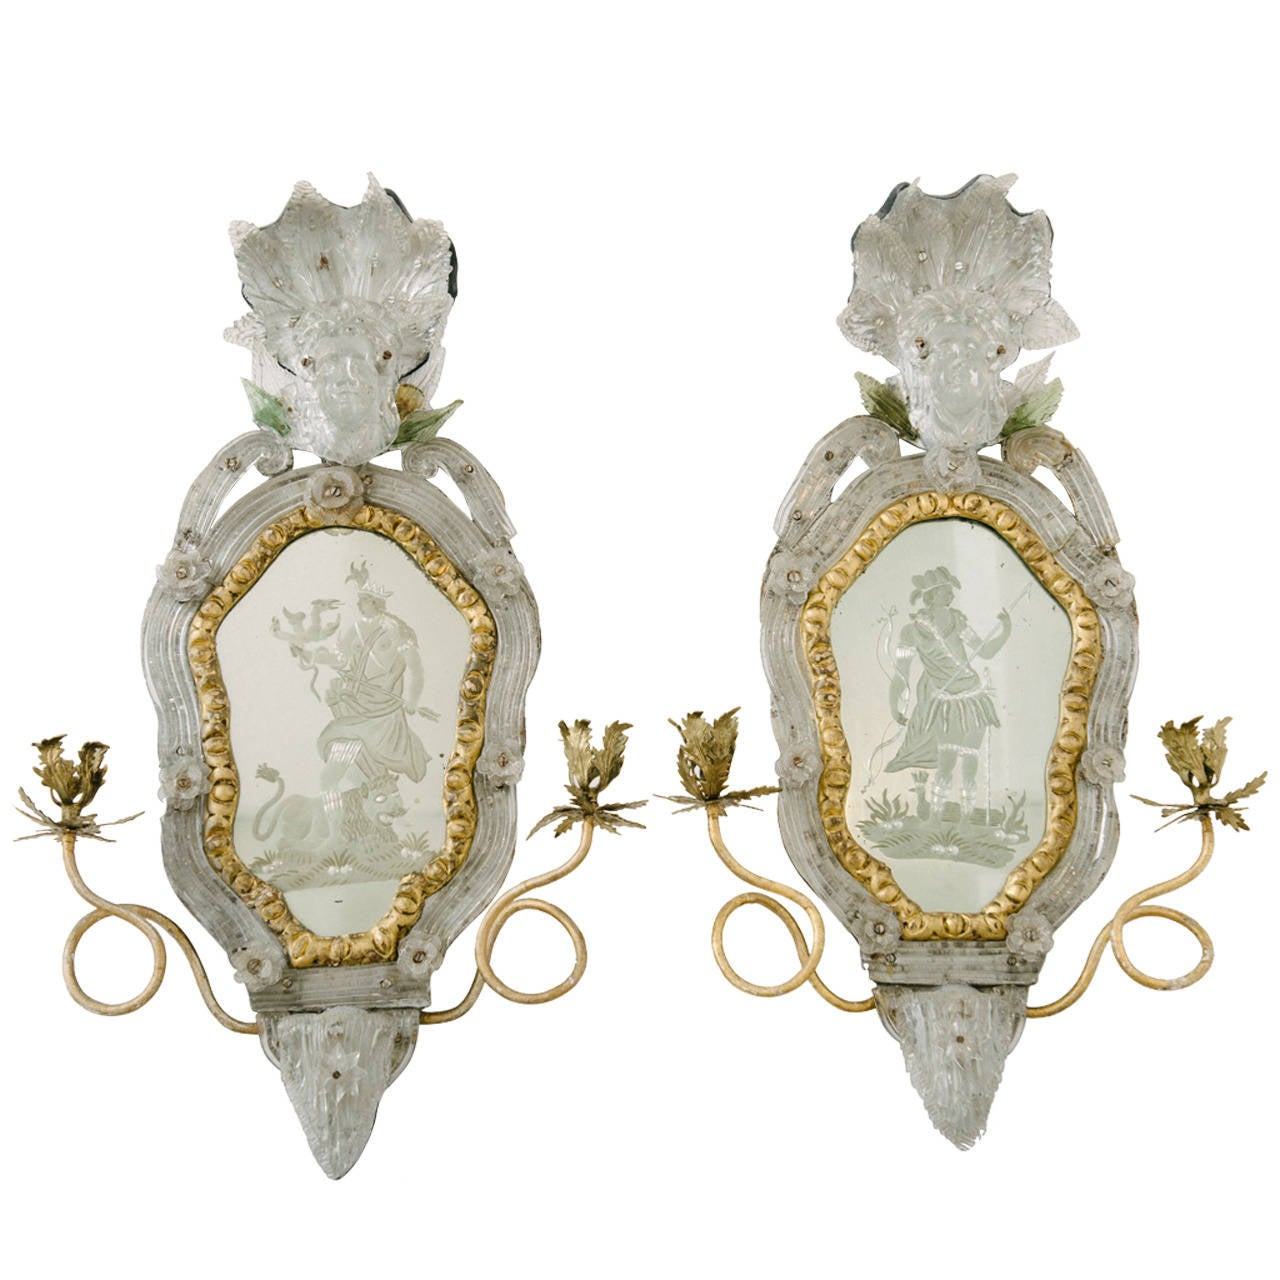 Venetian Wall Sconces : Rare Pair of 18th Century Venetian Etched Mirror Wall Sconces For Sale at 1stdibs